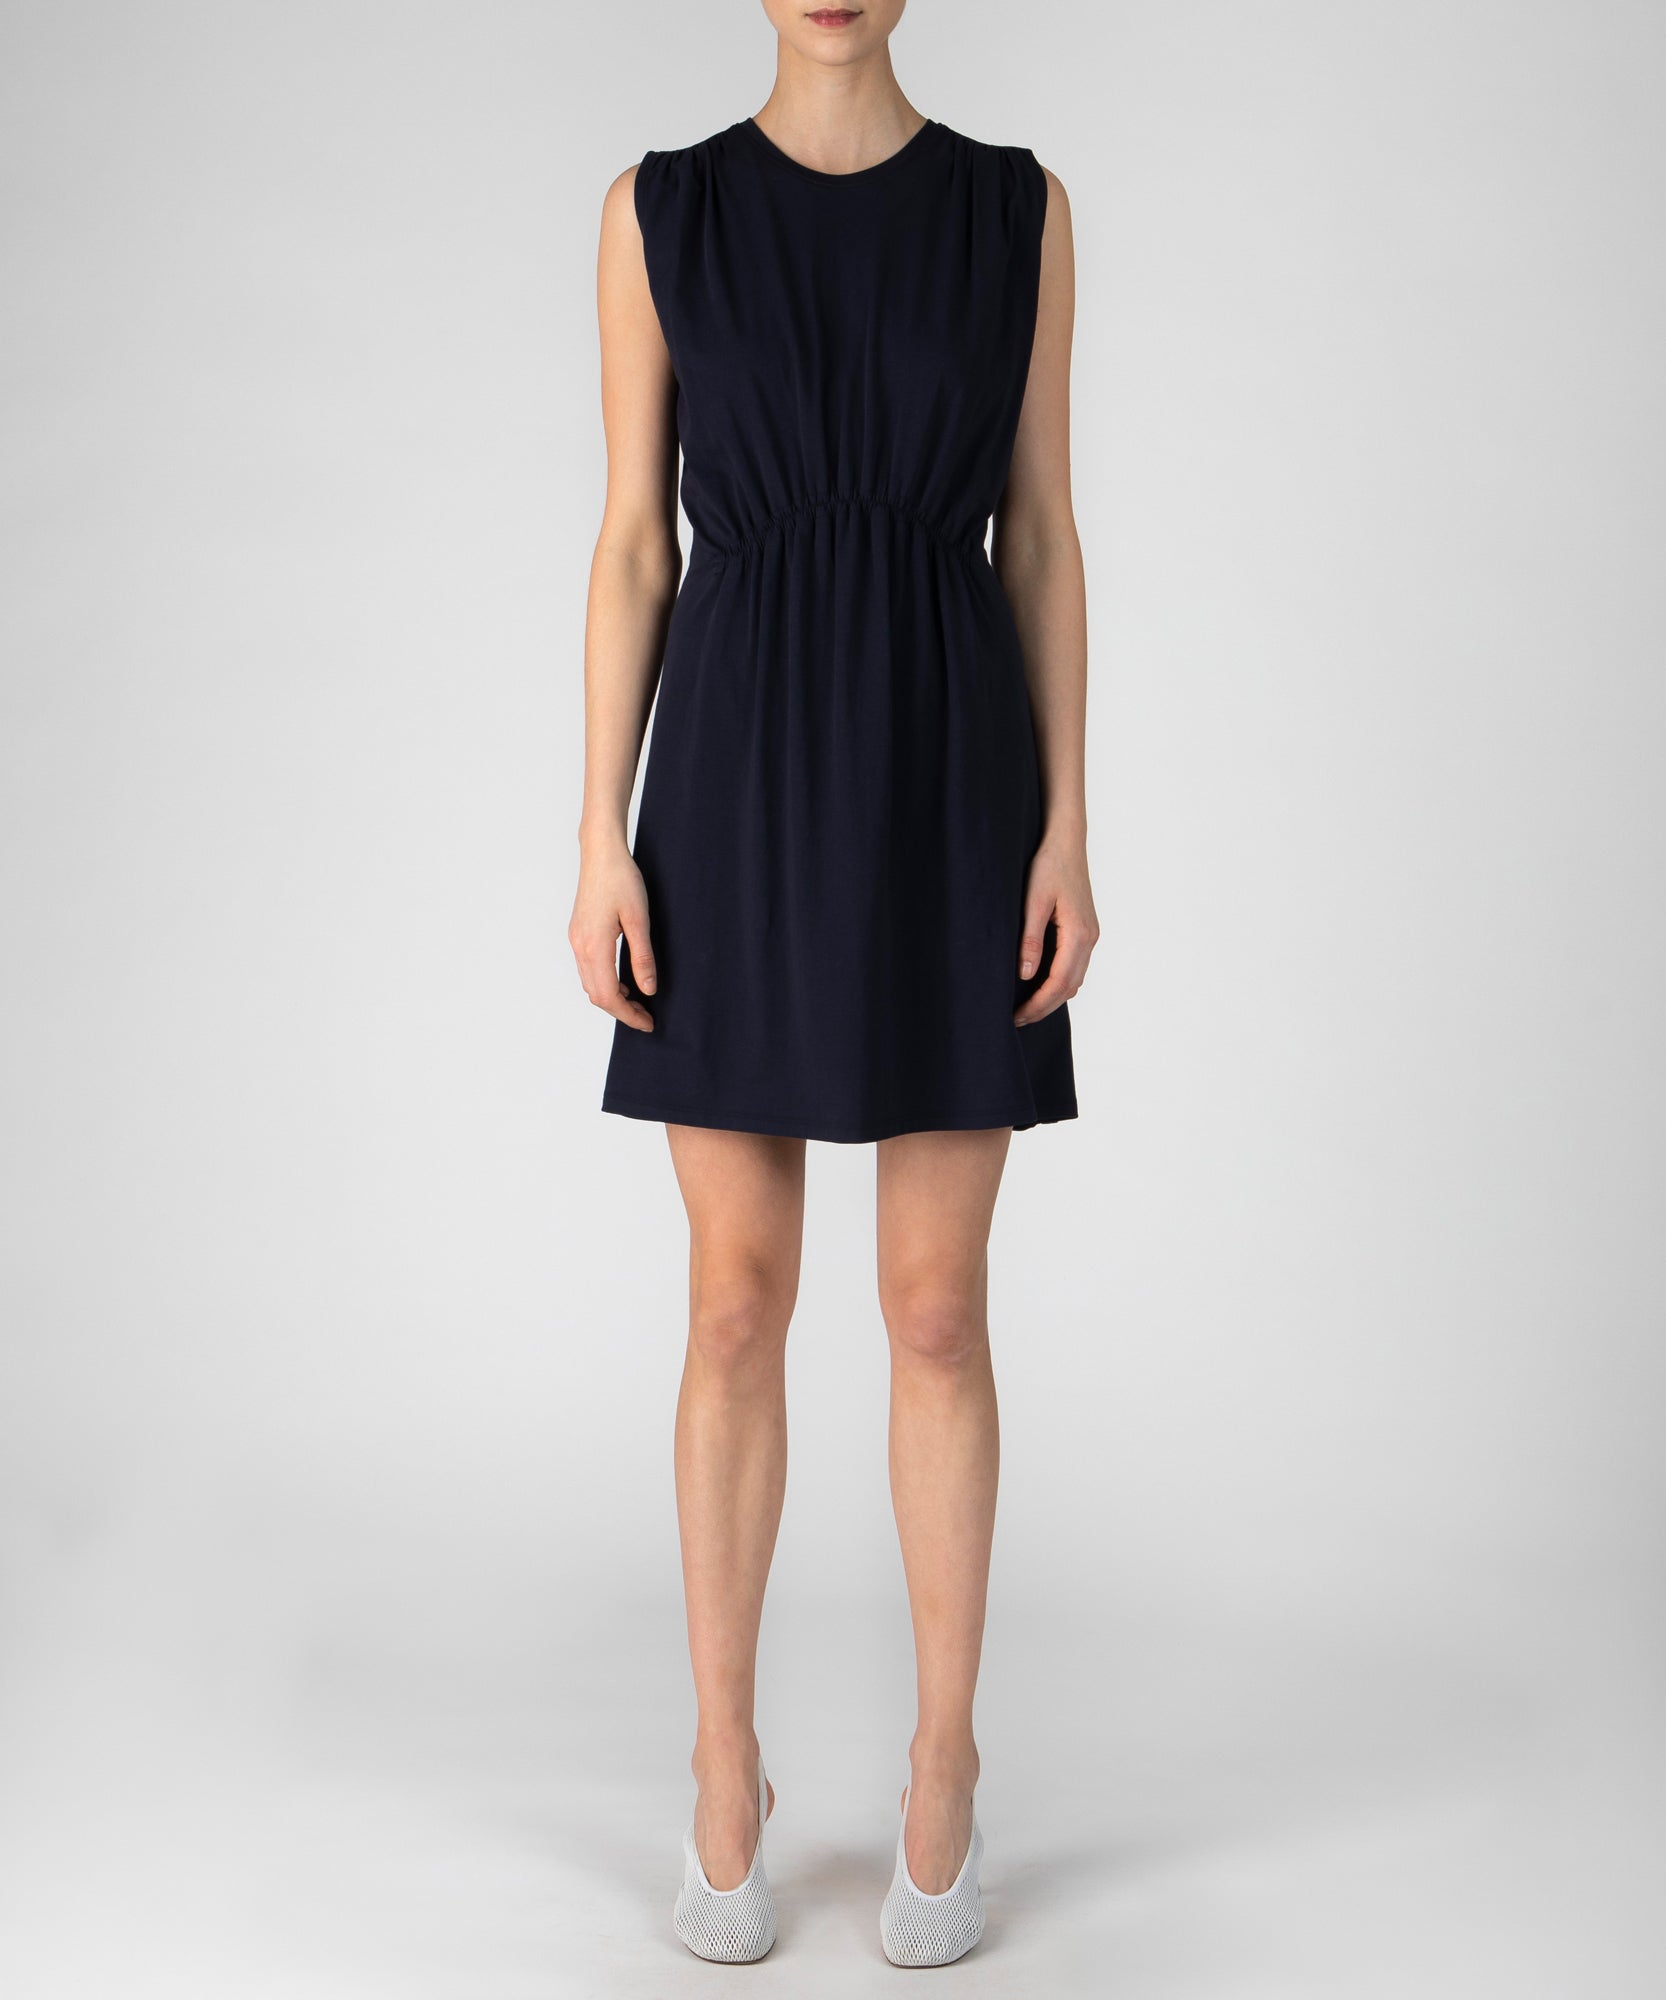 Deep NavyPima Cotton Sleeveless Tuck Detail Dress - Women's Casual Dress by ATM Anthony Thomas Melillo